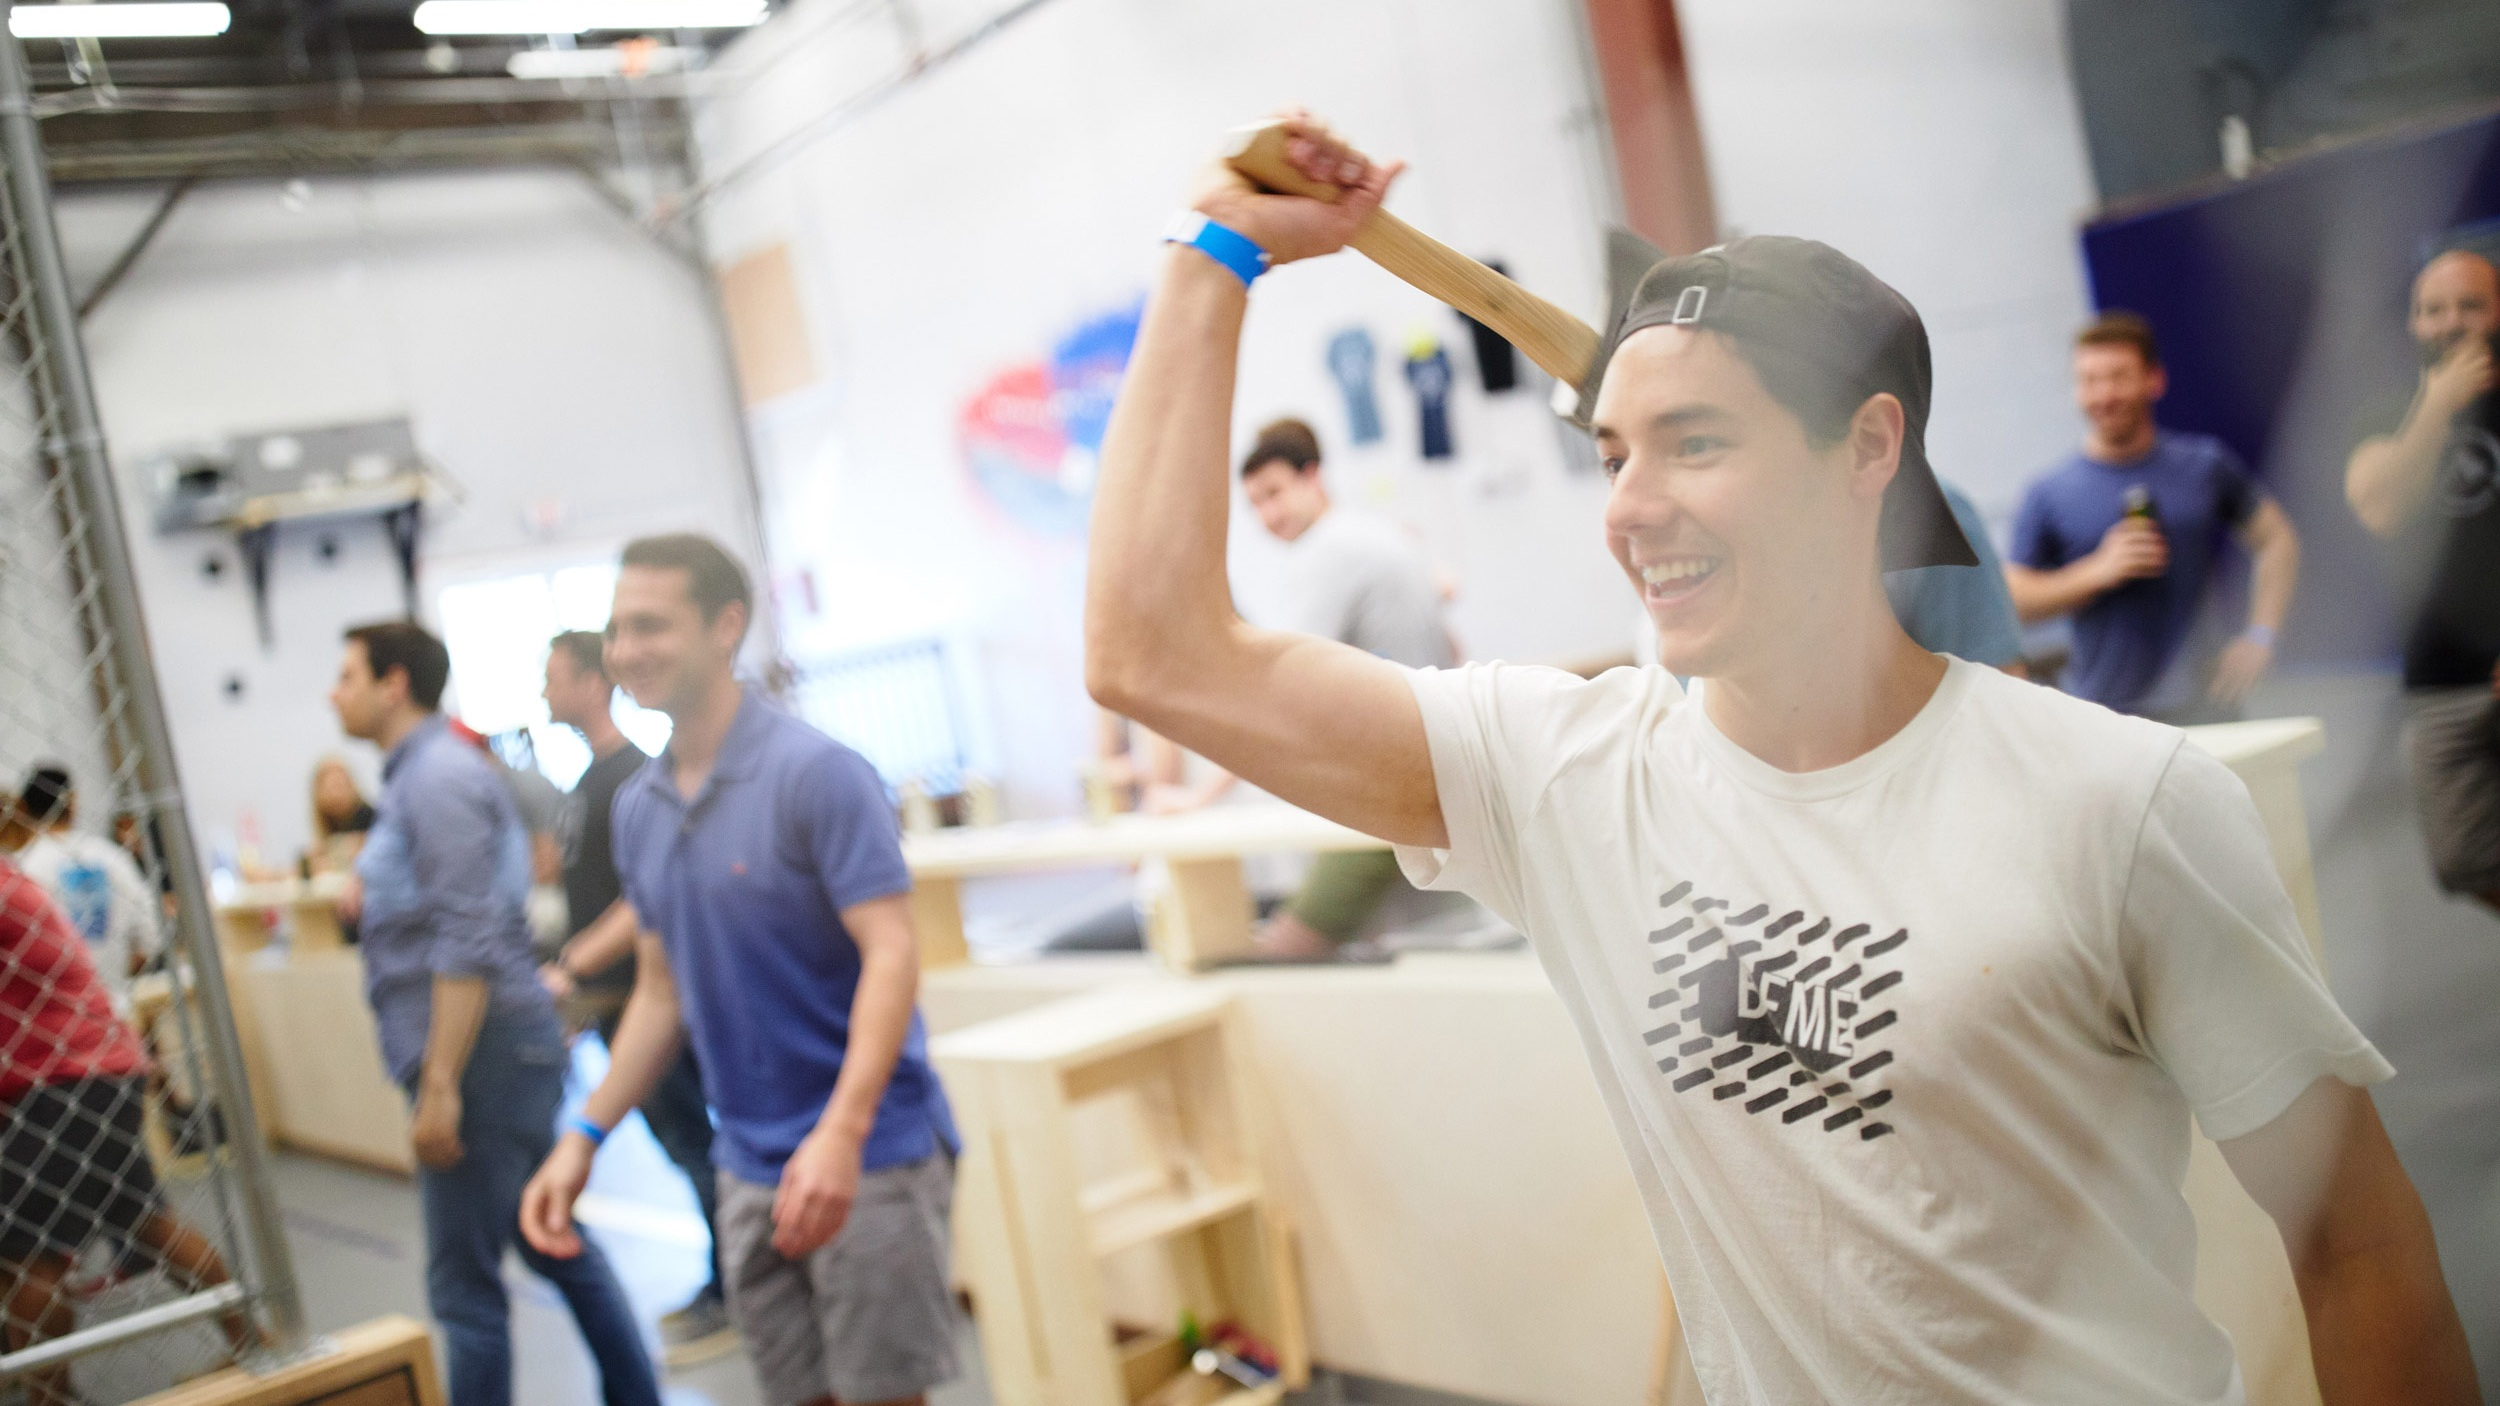 3. Throw Axes! - Once you've got a handle on the basics, compete with your friends in an action-packed round-robin tournament for 2 hours. Any way you cut it, you're going to have a great time!